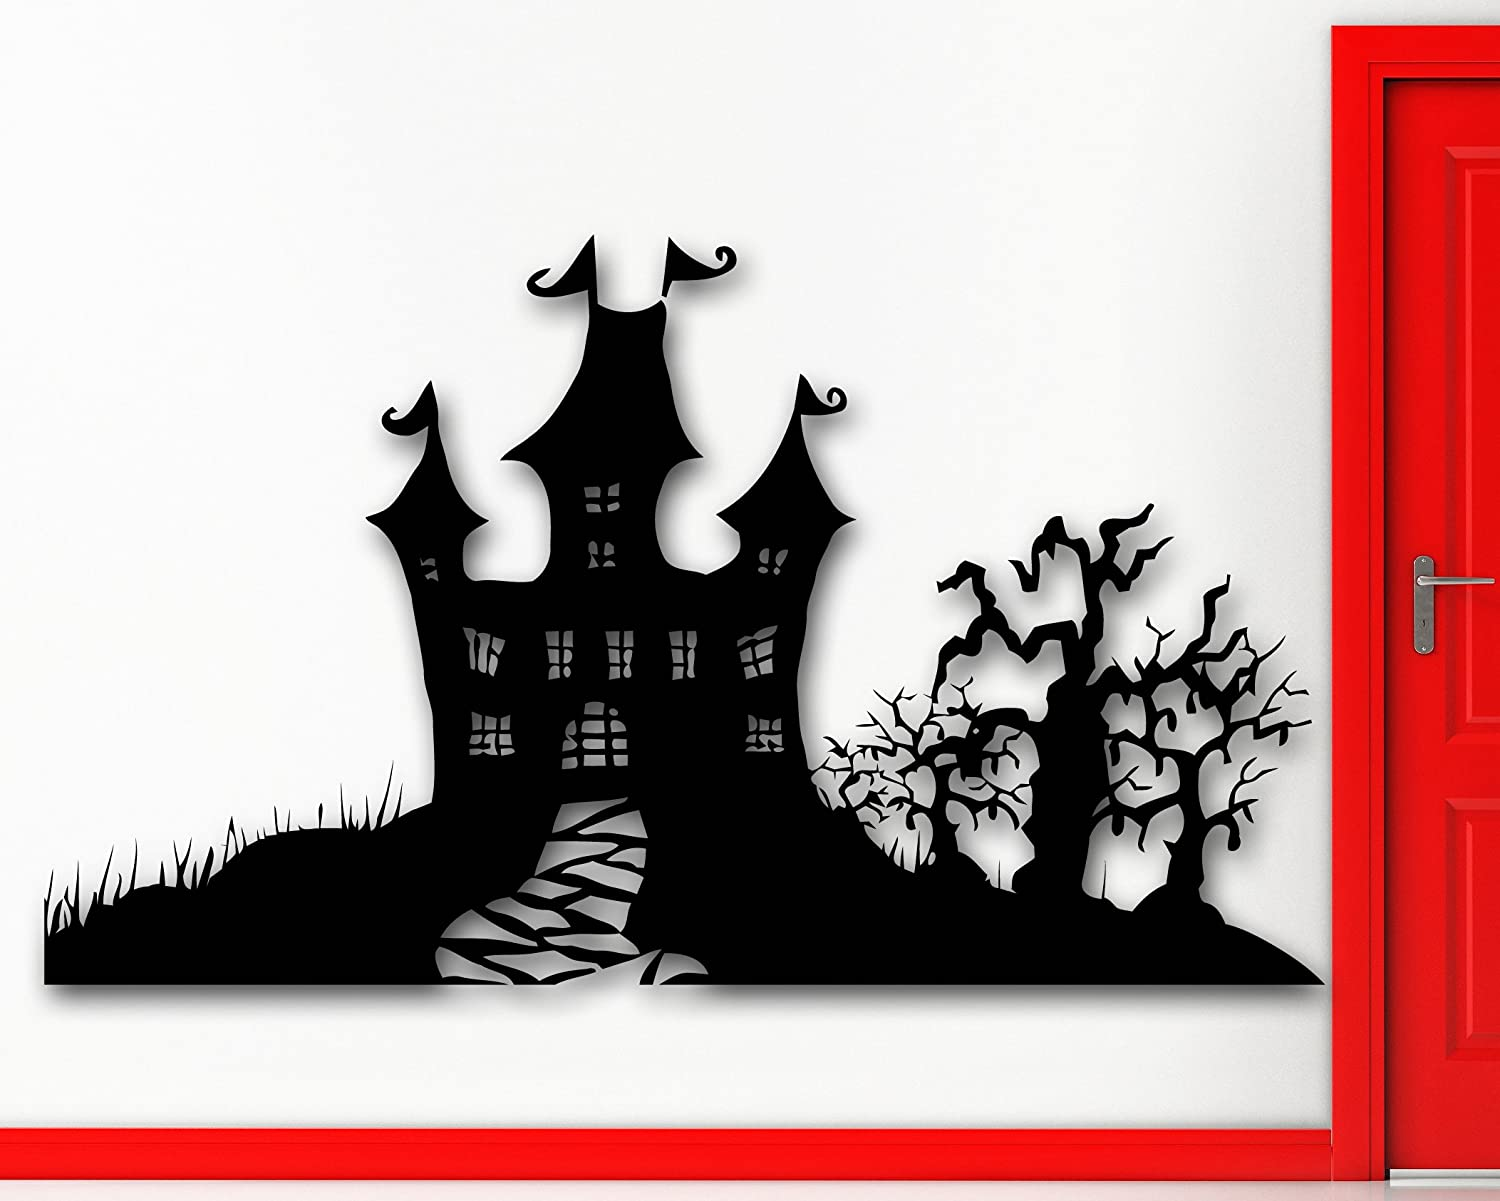 Halloween Wall Sticker Decals Halloween Wikii - Custom vinyl decals for wood   removal options